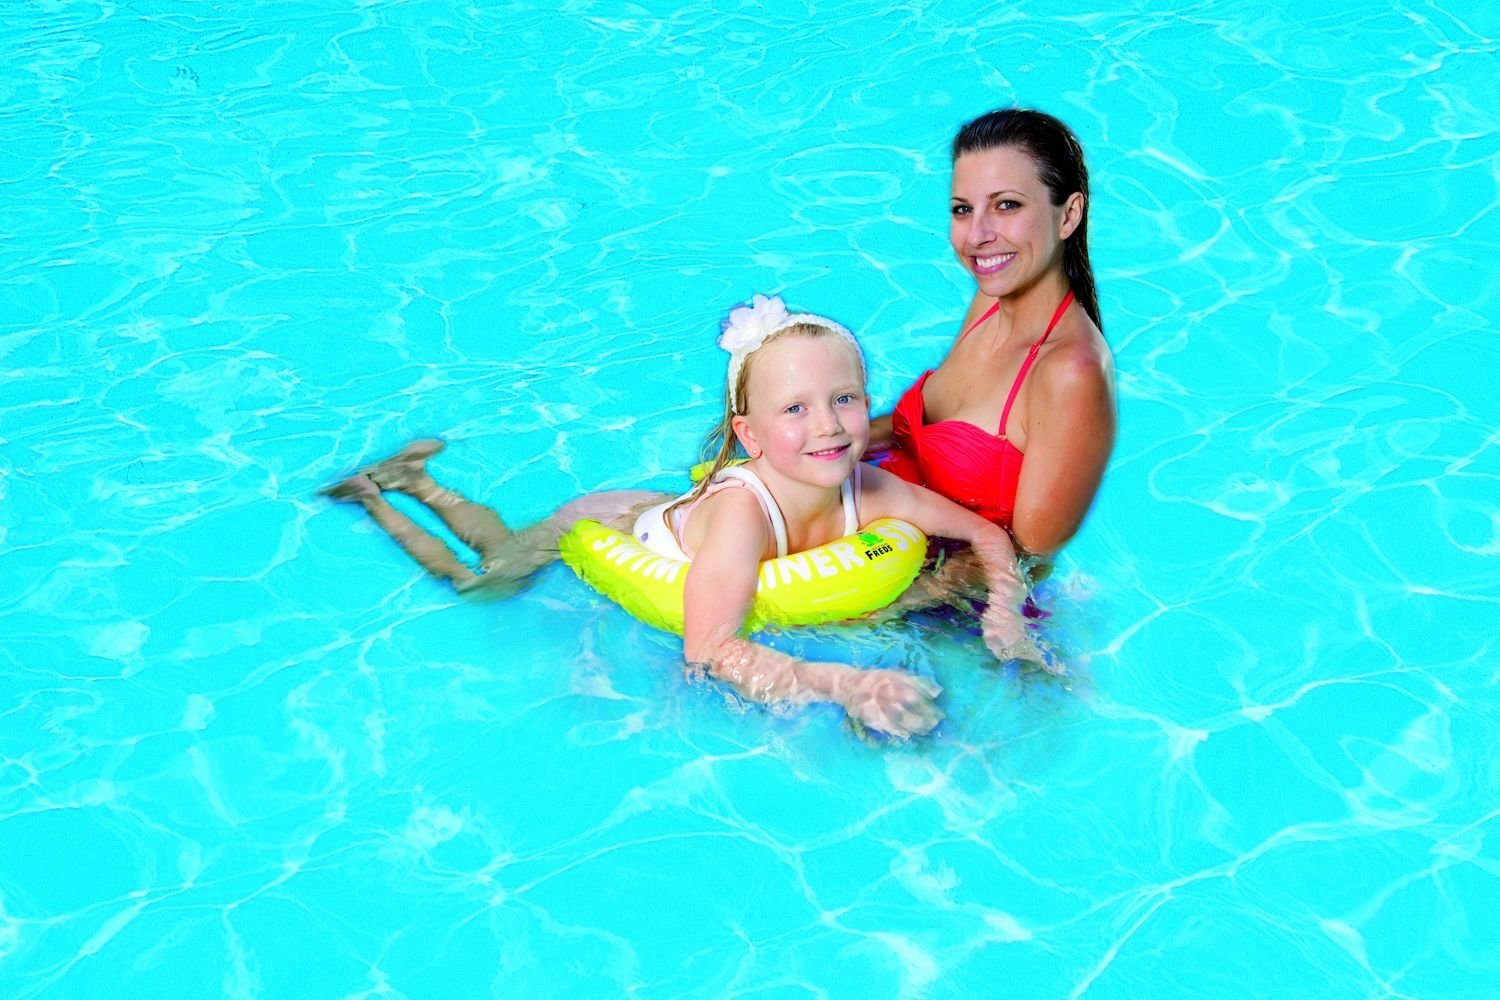 "The orange SWIMTRAINER ""Classic"" Orange is the 2nd step in FREDS SWIM ACADEMY'S learn to swim system and is used for teaching perfect arm and leg movements.  Fred baby swim trainer kids swimming training with strap harness  Specially designed for small children with an approximate weight of 15 kg to 30 kg and is suited for beginners and advanced learners.  Fred baby swim trainer kids swimming training with strap harnessFreds baby swim trainer  CLICK HERE FOR MORE SWIMMING TOOLS  freds swim academy baby swim trainer swim float 宝宝婴儿幼儿安全游泳圈freds swim academy baby swim trainer swim float 宝宝婴儿幼儿安全游泳圈freds swim academy baby swim trainer swim float 宝宝婴儿幼儿安全游泳圈freds swim academy baby swim trainer swim float 宝宝婴儿幼儿安全游泳圈freds swim academy baby swim trainer swim float 宝宝婴儿幼儿安全游泳圈freds swim academy baby swim trainer swim float 宝宝婴儿幼儿安全游泳圈freds swim academy baby swim trainer swim float 宝宝婴儿幼儿安全游泳圈freds swim academy baby swim trainer swim float 宝宝婴儿幼儿安全游泳圈freds swim academy baby swim trainer swim float 宝宝婴儿幼儿安全游泳圈freds swim academy baby swim trainer swim float 宝宝婴儿幼儿安全游泳圈freds swim academy baby swim trainer swim float 宝宝婴儿幼儿安全游泳圈freds swim academy baby swim trainer swim float 宝宝婴儿幼儿安全游泳圈freds swim academy baby swim trainer swim float 宝宝婴儿幼儿安全游泳圈freds swim academy baby swim trainer swim float 宝宝婴儿幼儿安全游泳圈freds swim academy baby swim trainer swim float 宝宝婴儿幼儿安全游泳圈freds swim academy baby swim trainer swim float 宝宝婴儿幼儿安全游泳圈freds swim academy baby swim trainer swim float 宝宝婴儿幼儿安全游泳圈freds swim academy baby swim trainer swim float 宝宝婴儿幼儿安全游泳圈freds swim academy baby swim trainer swim float 宝宝婴儿幼儿安全游泳圈"